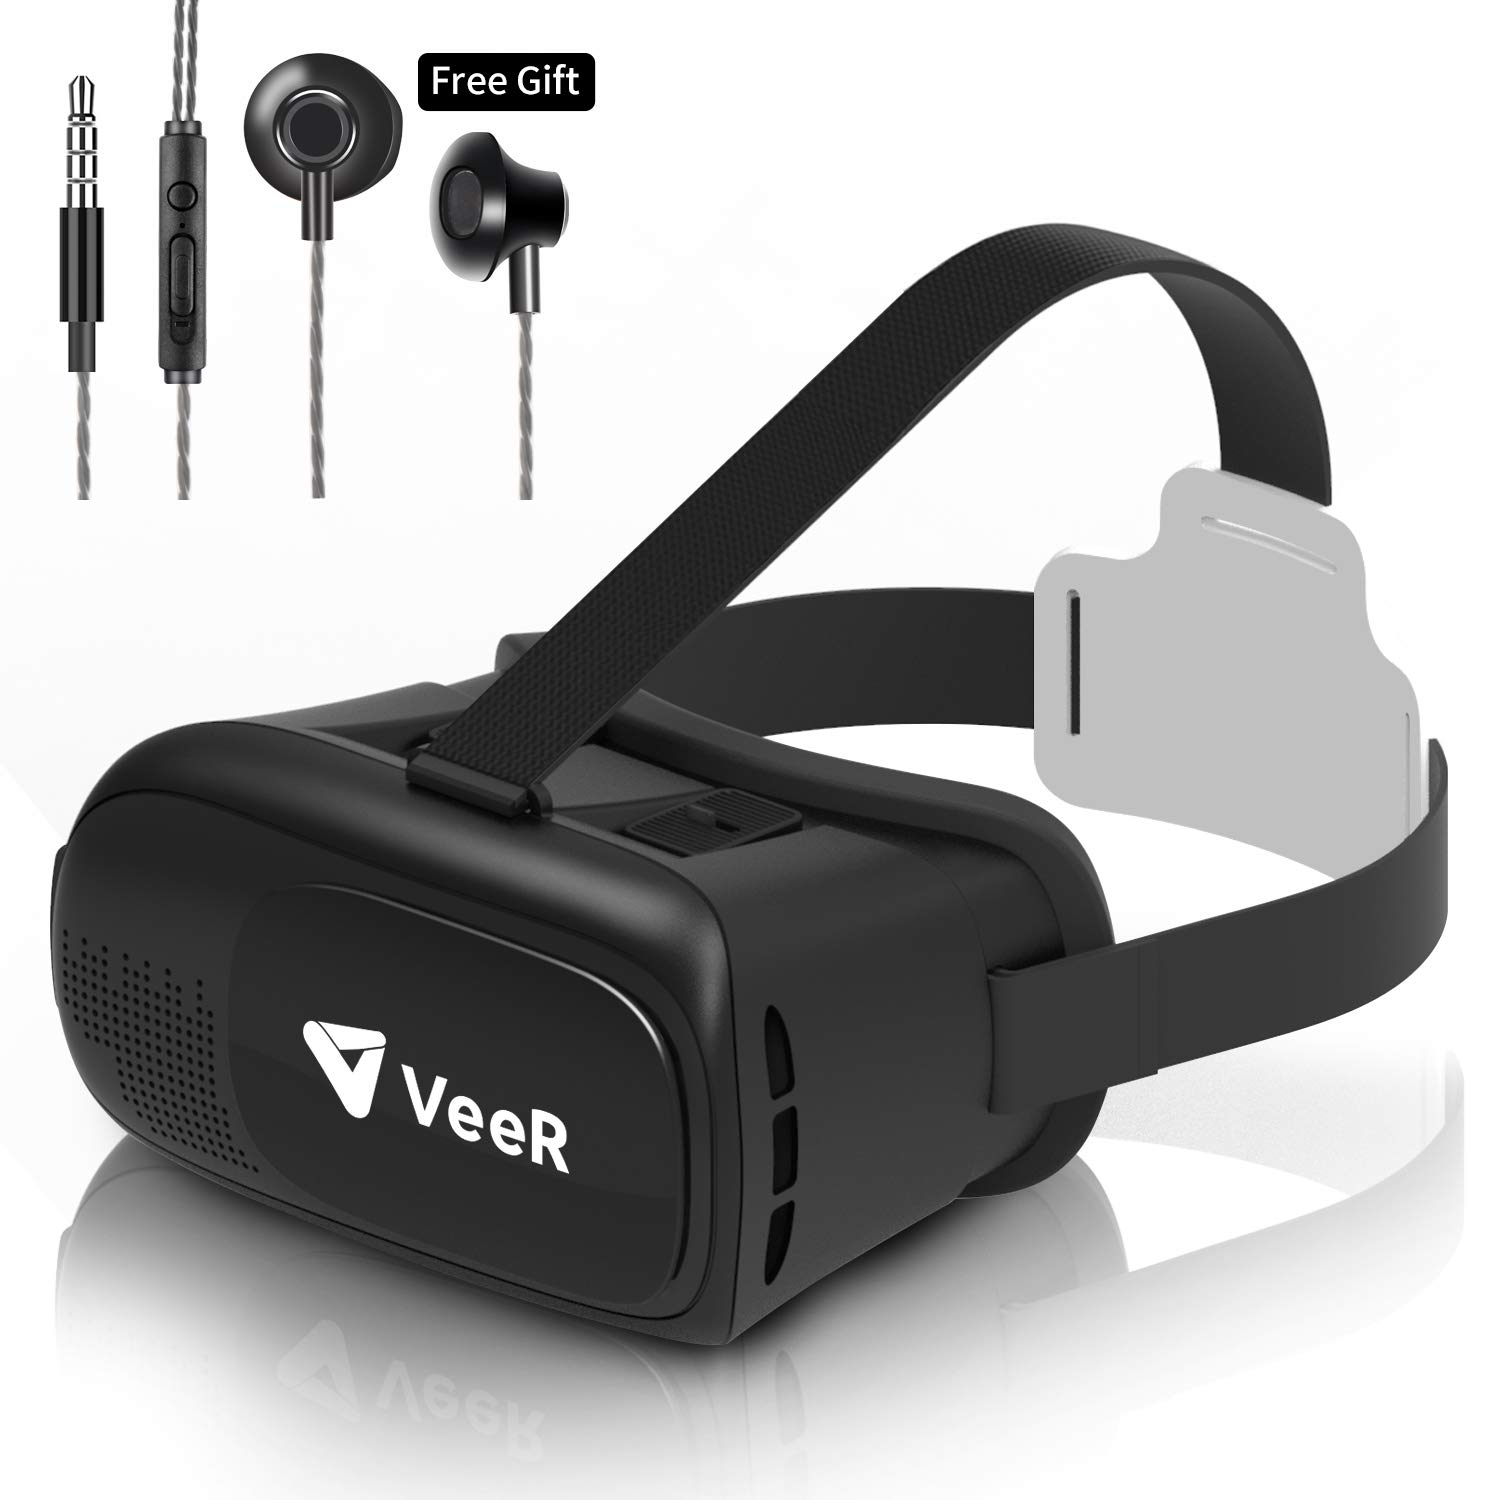 VeeR Origin VR Headset, Universal Virtual Reality Goggles Ver2.0 for 360 Movies & Video Games Compatible with Android Smartphone & iPhone, 3D VR Glasses with in-Ear Earbud Headphone by Veer